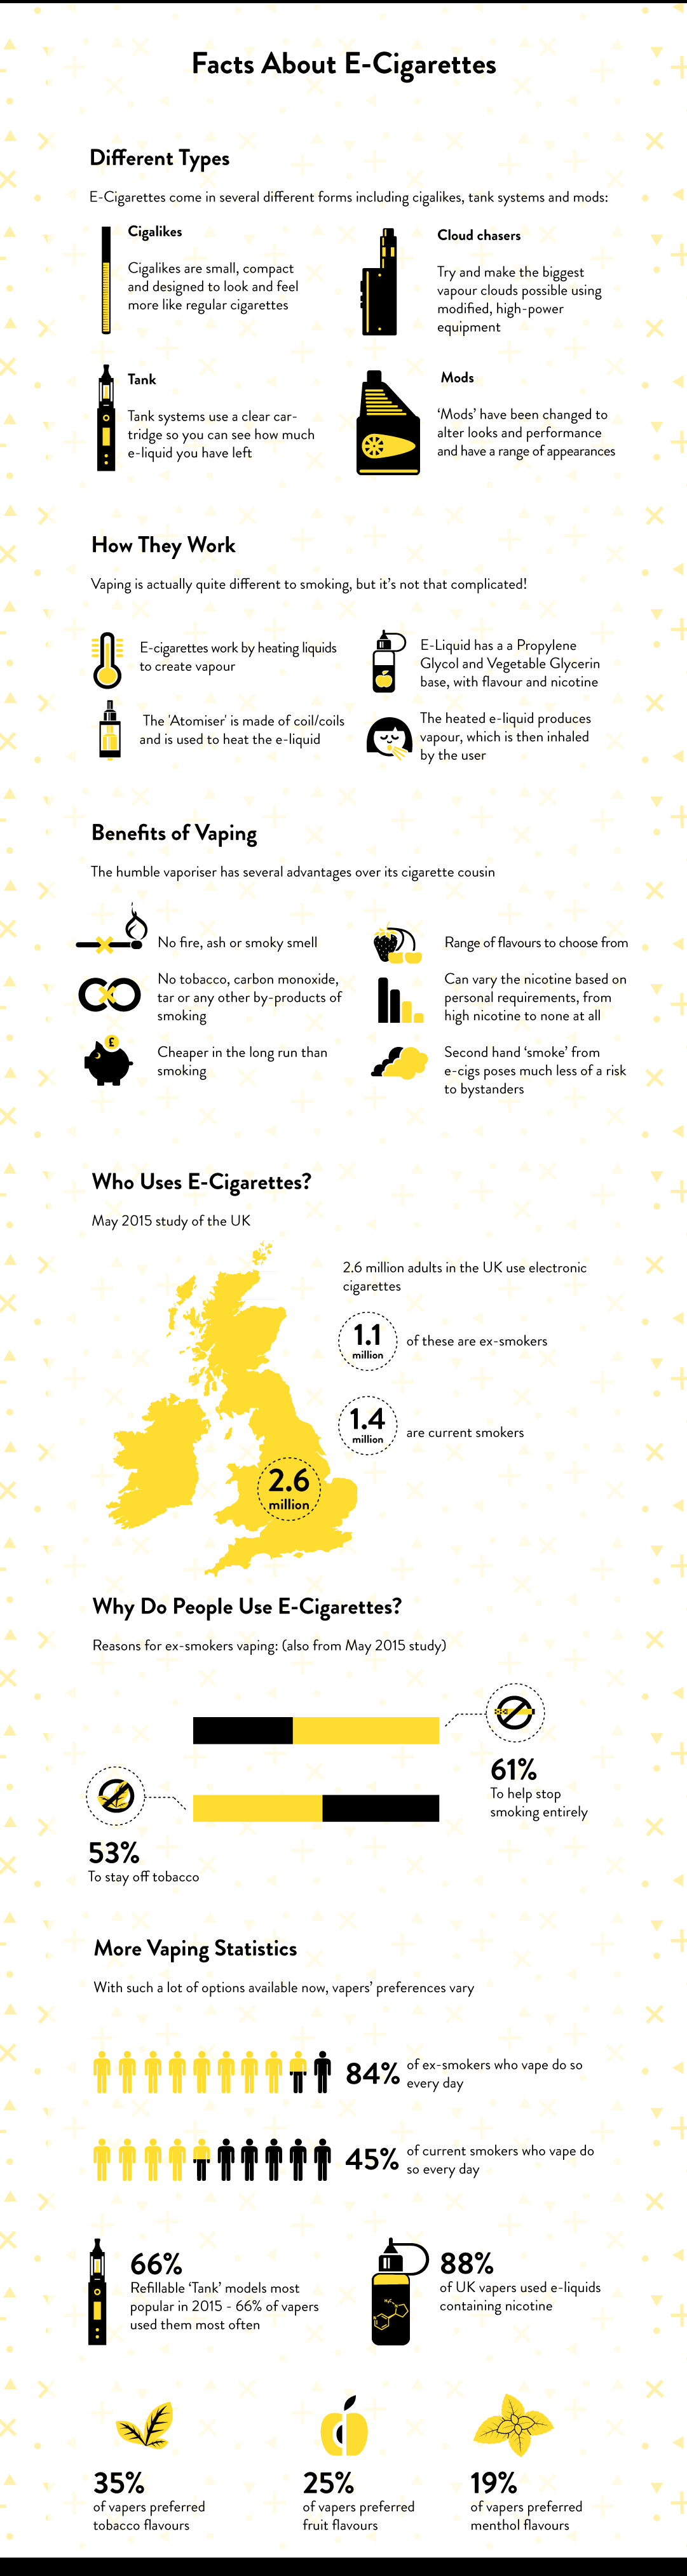 Learn the Facts About E-Cigarettes with Our Helpful Infographic